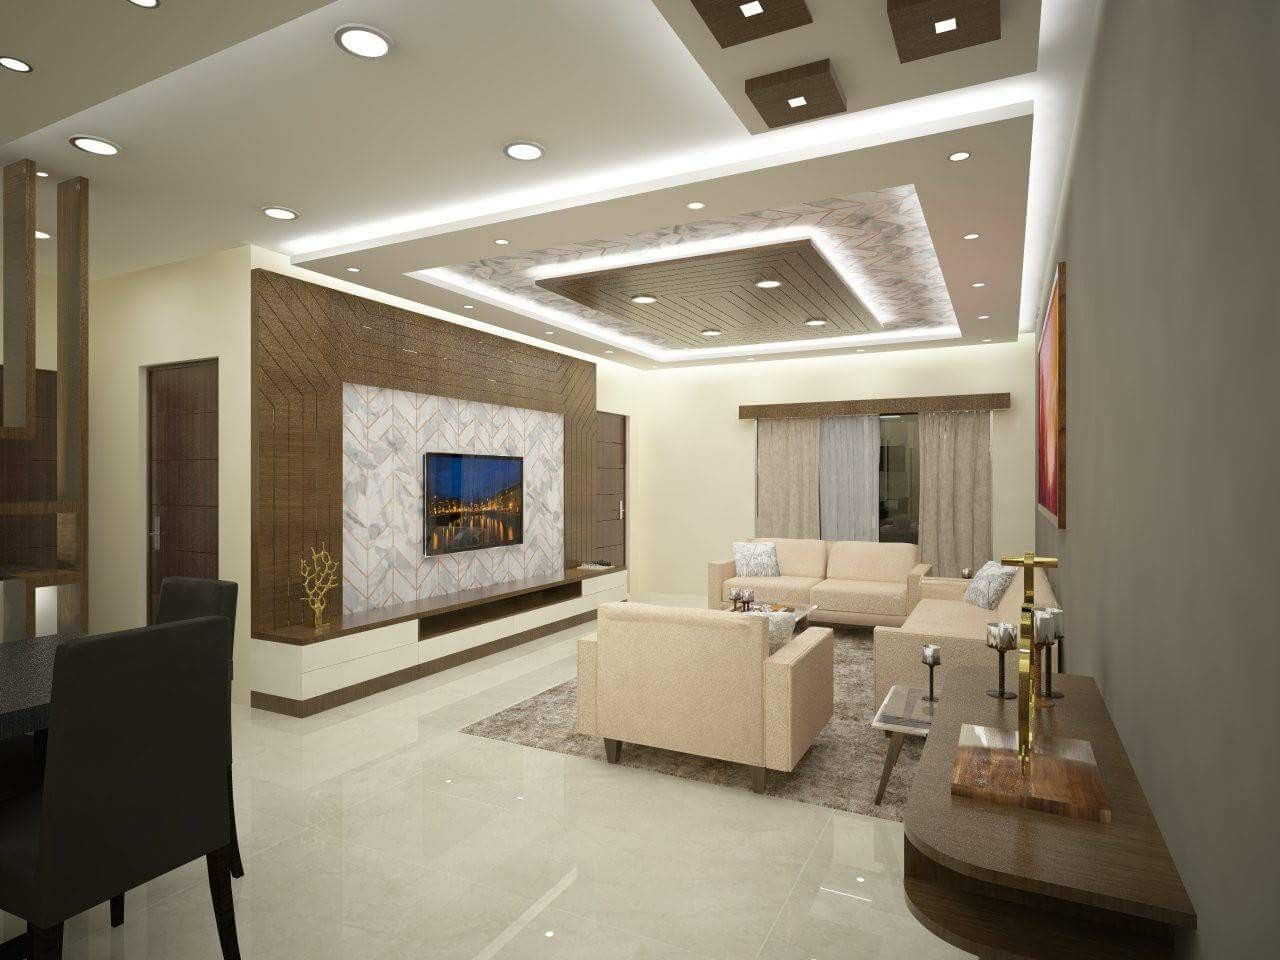 Pin By Lathish Kumar On Design With Images False Ceiling